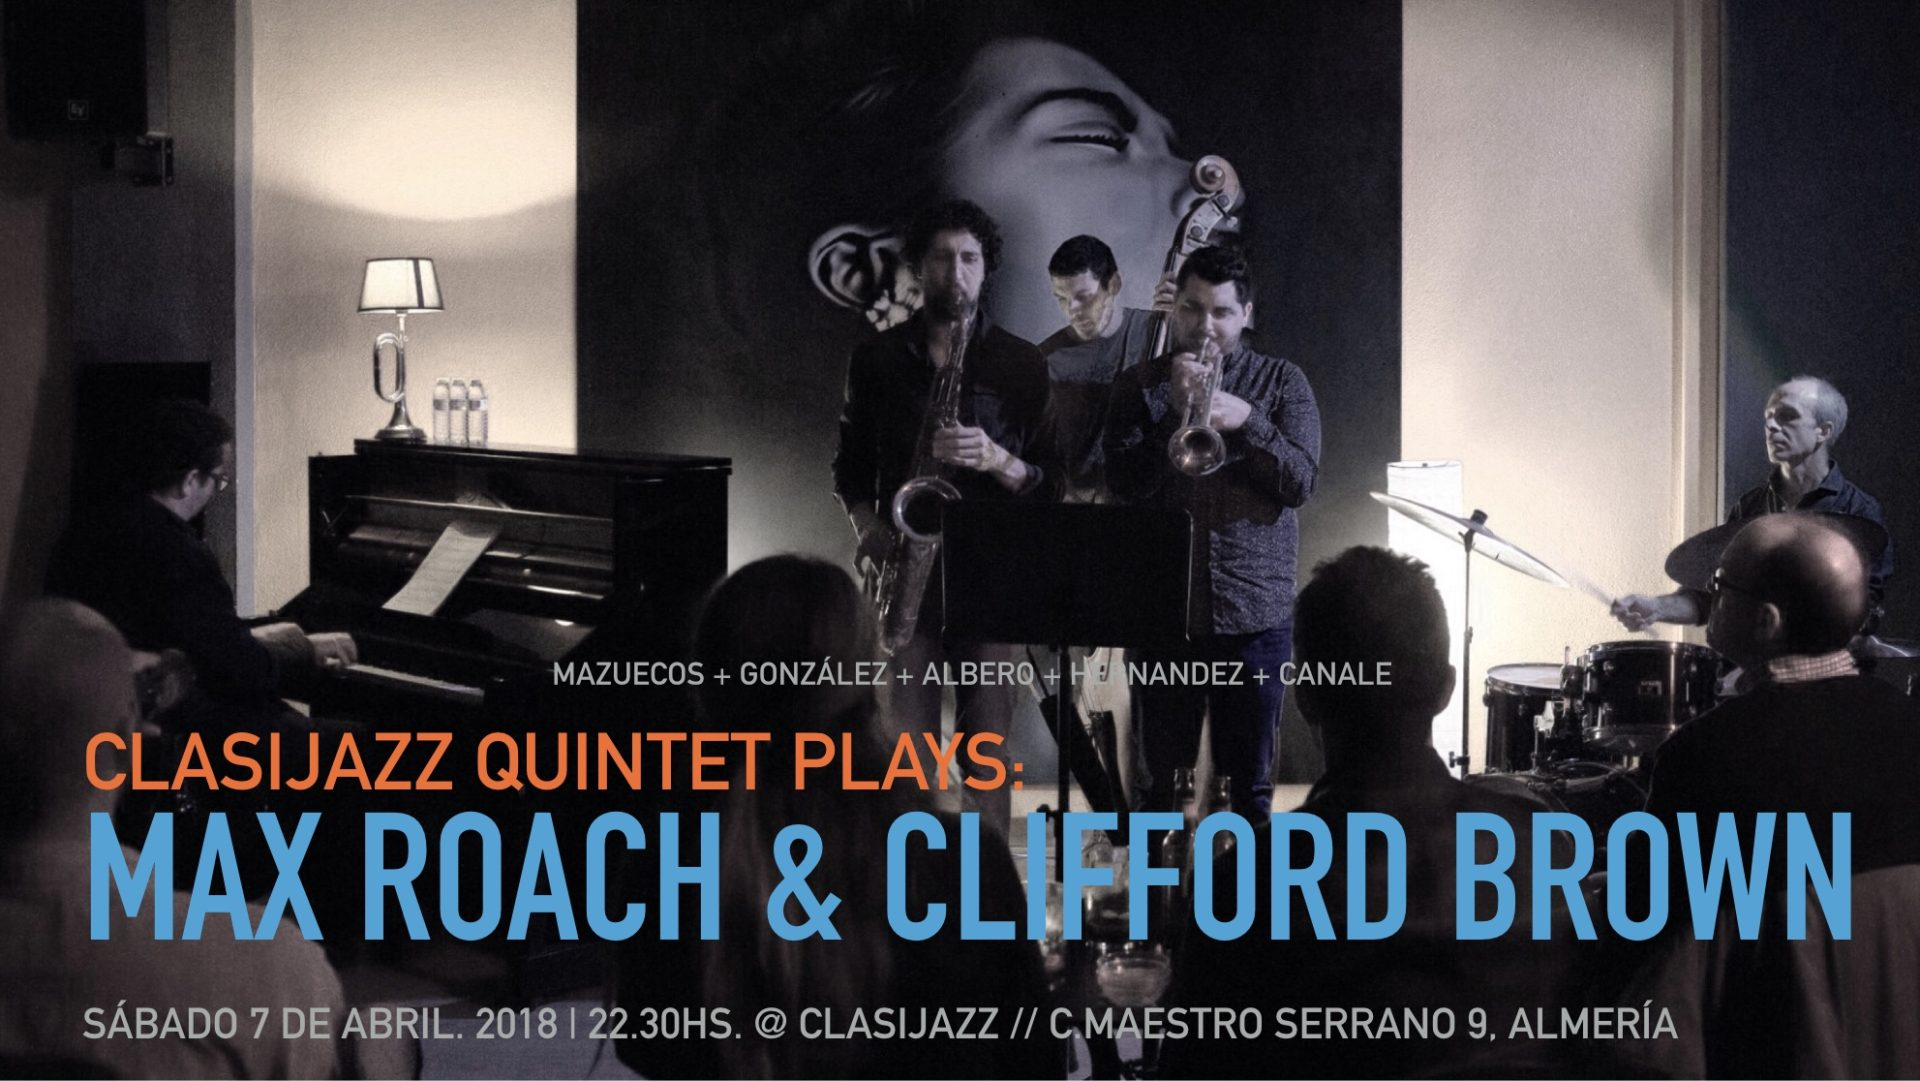 Clasijazz Quintet play Max Roach and Clifford Brown